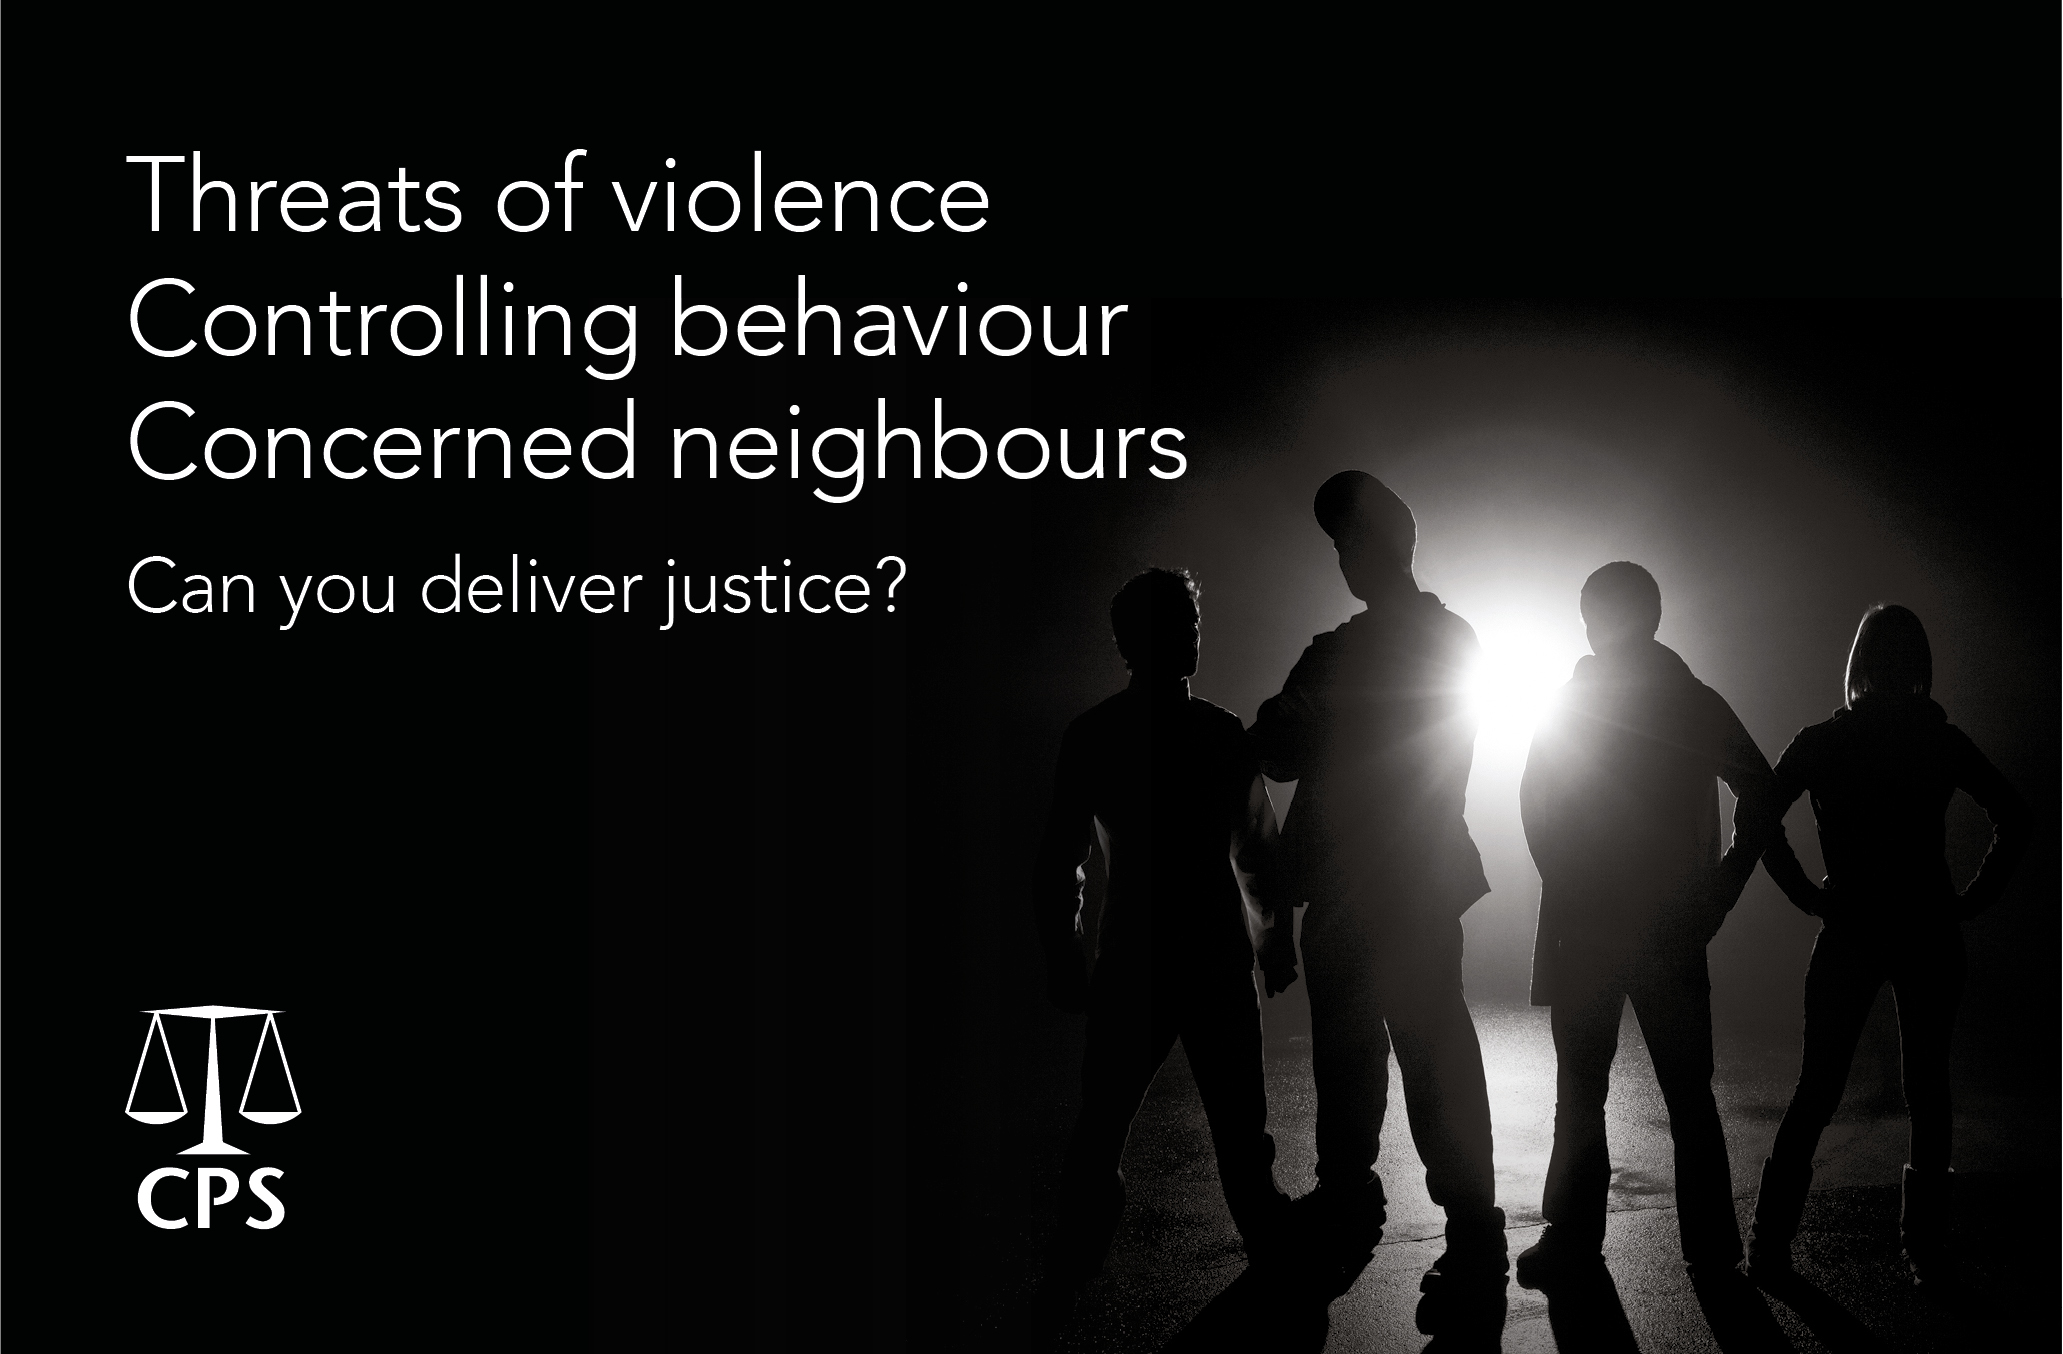 CPS - Can you deliver justice? campaign (gang)